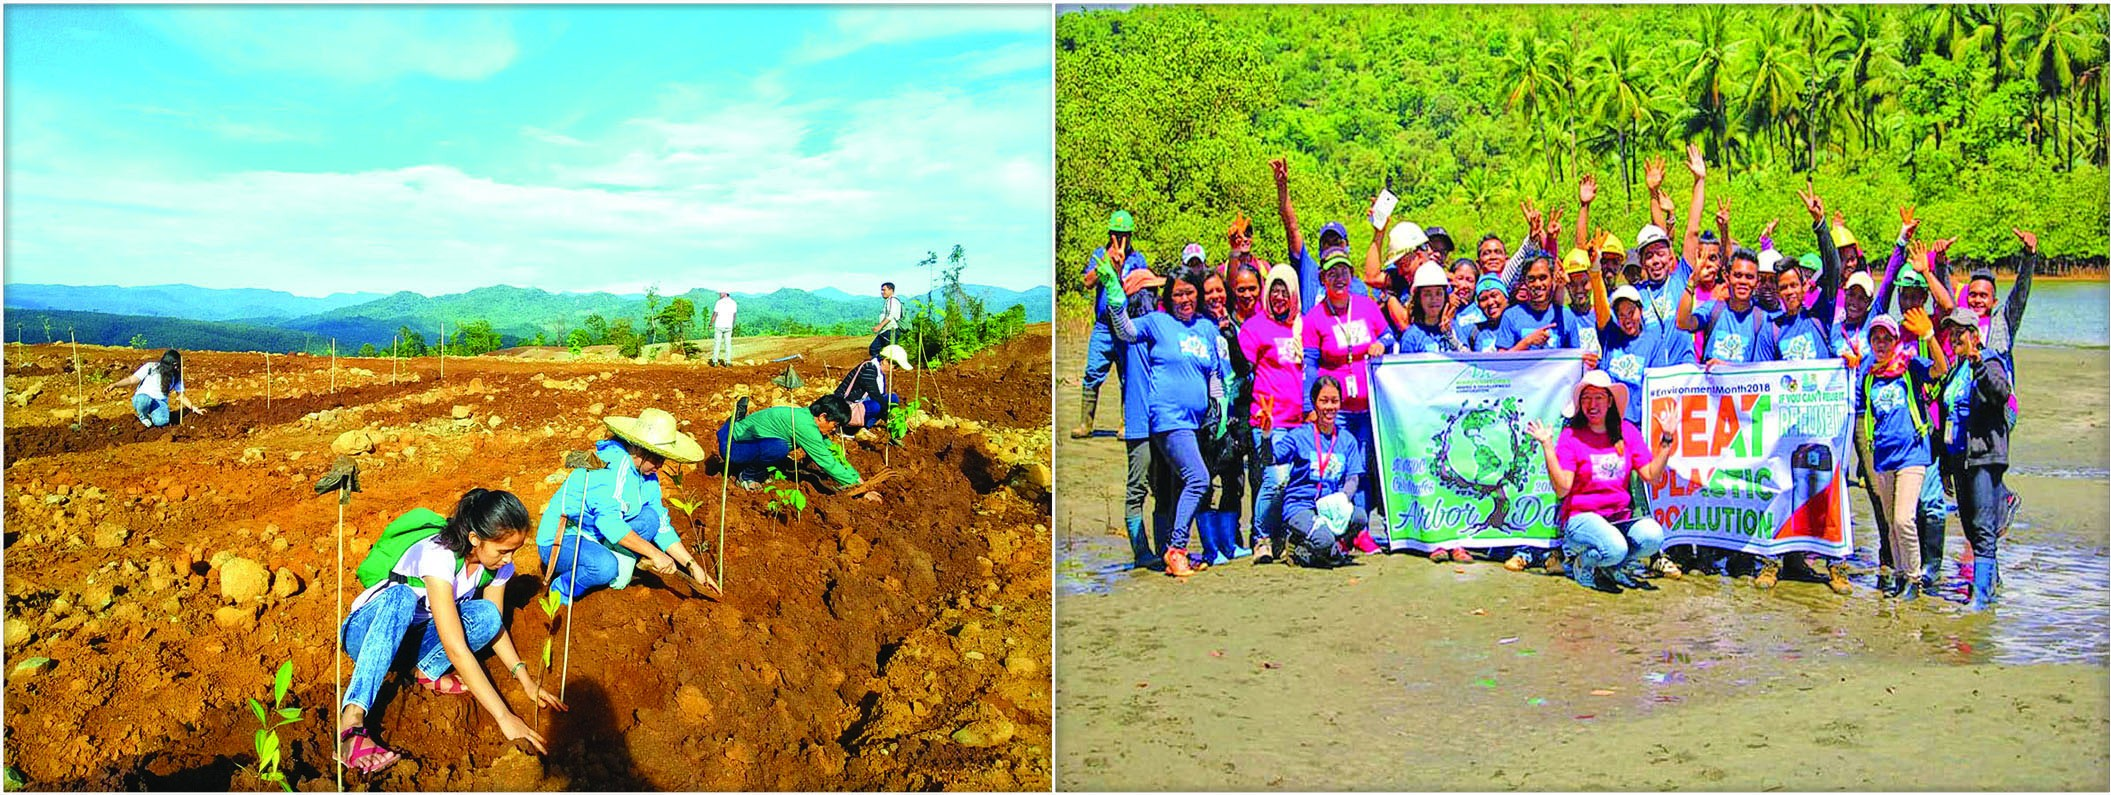 Over 1K trees planted, 350 kgs of wastes collected on Arbor Day 2018